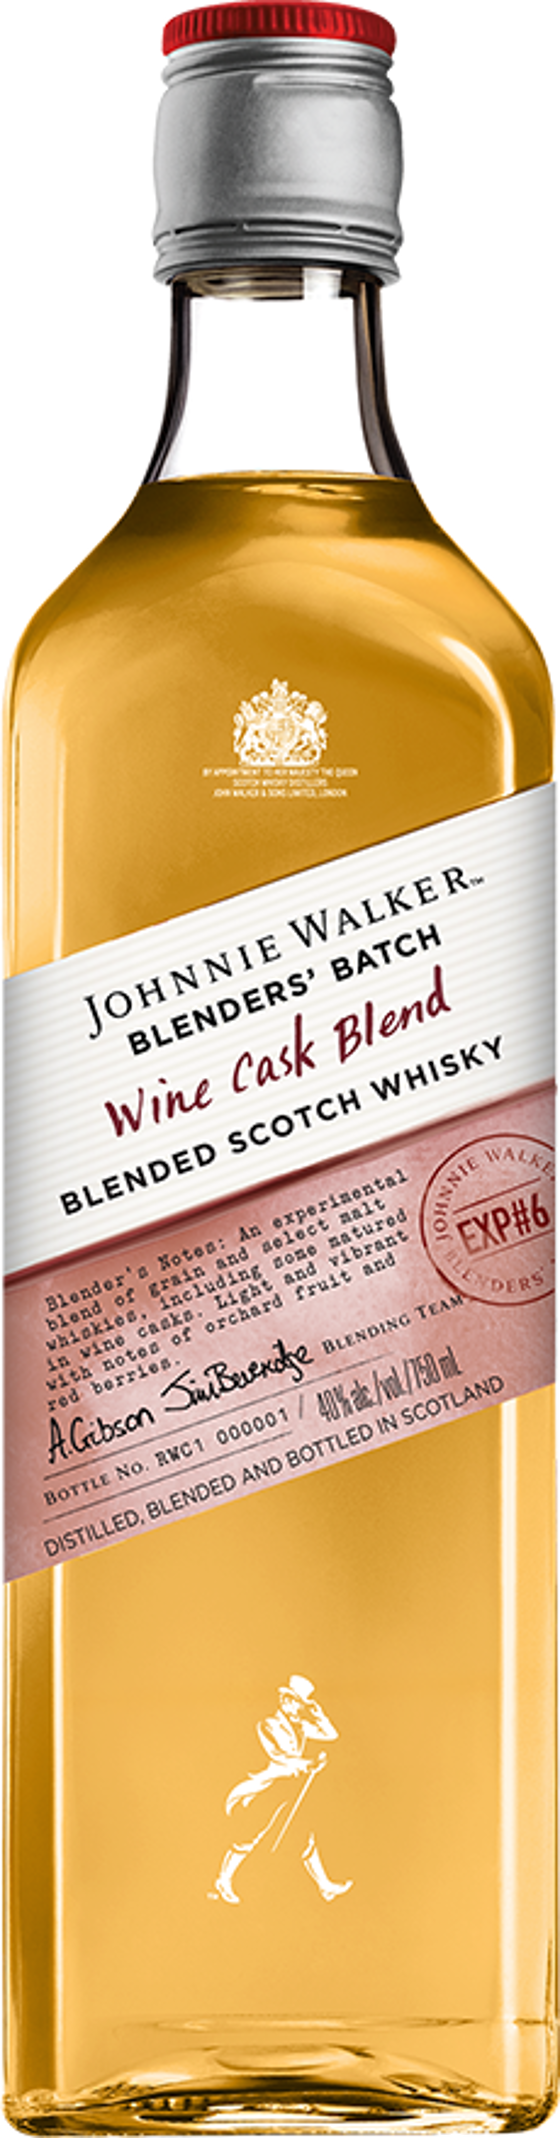 4. Johnnie Walker Wine Cask